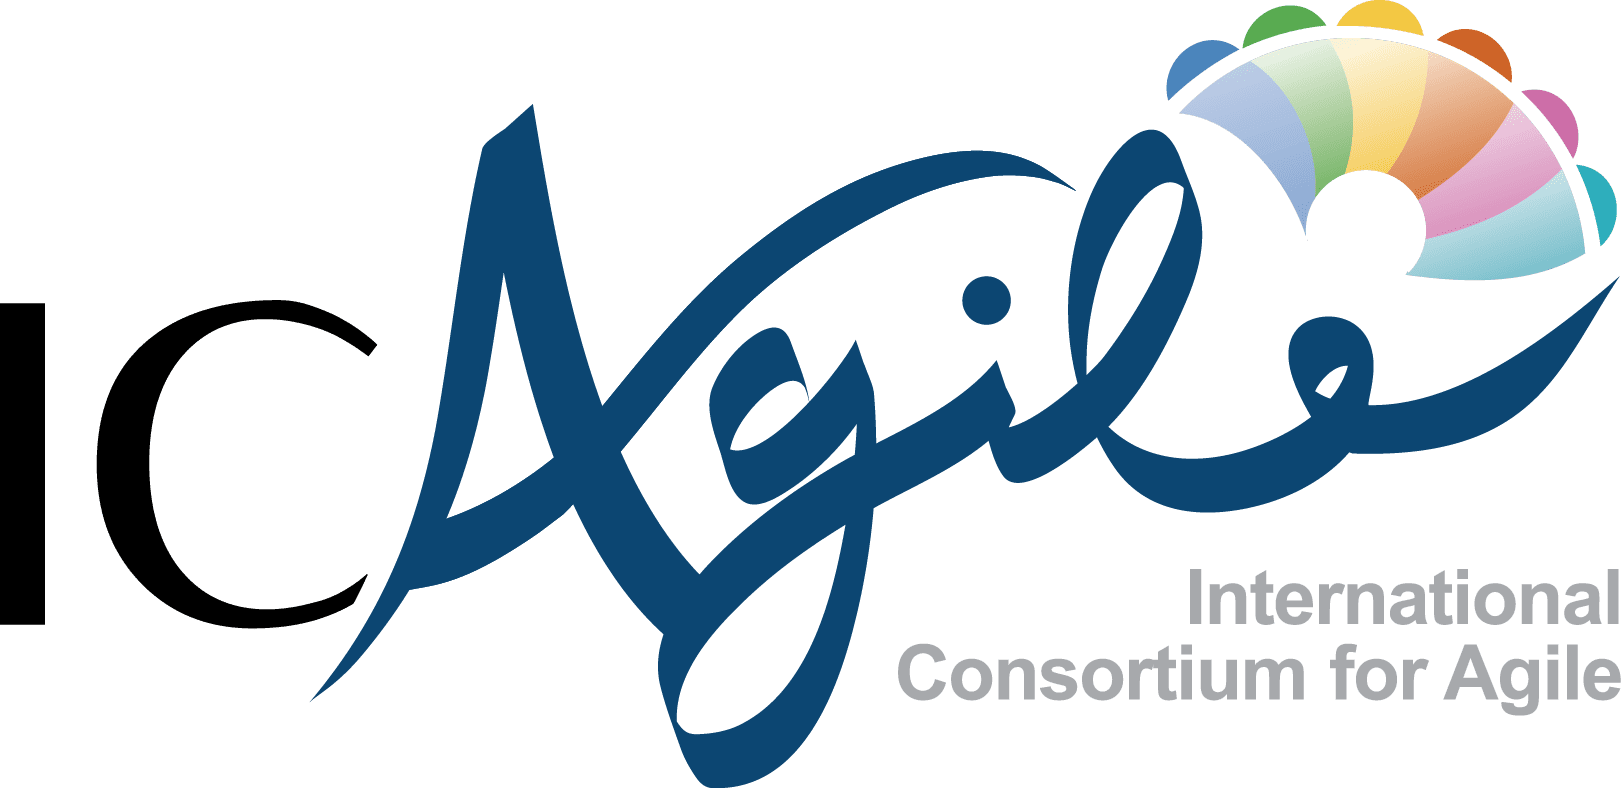 International Consortium of Agile Logo